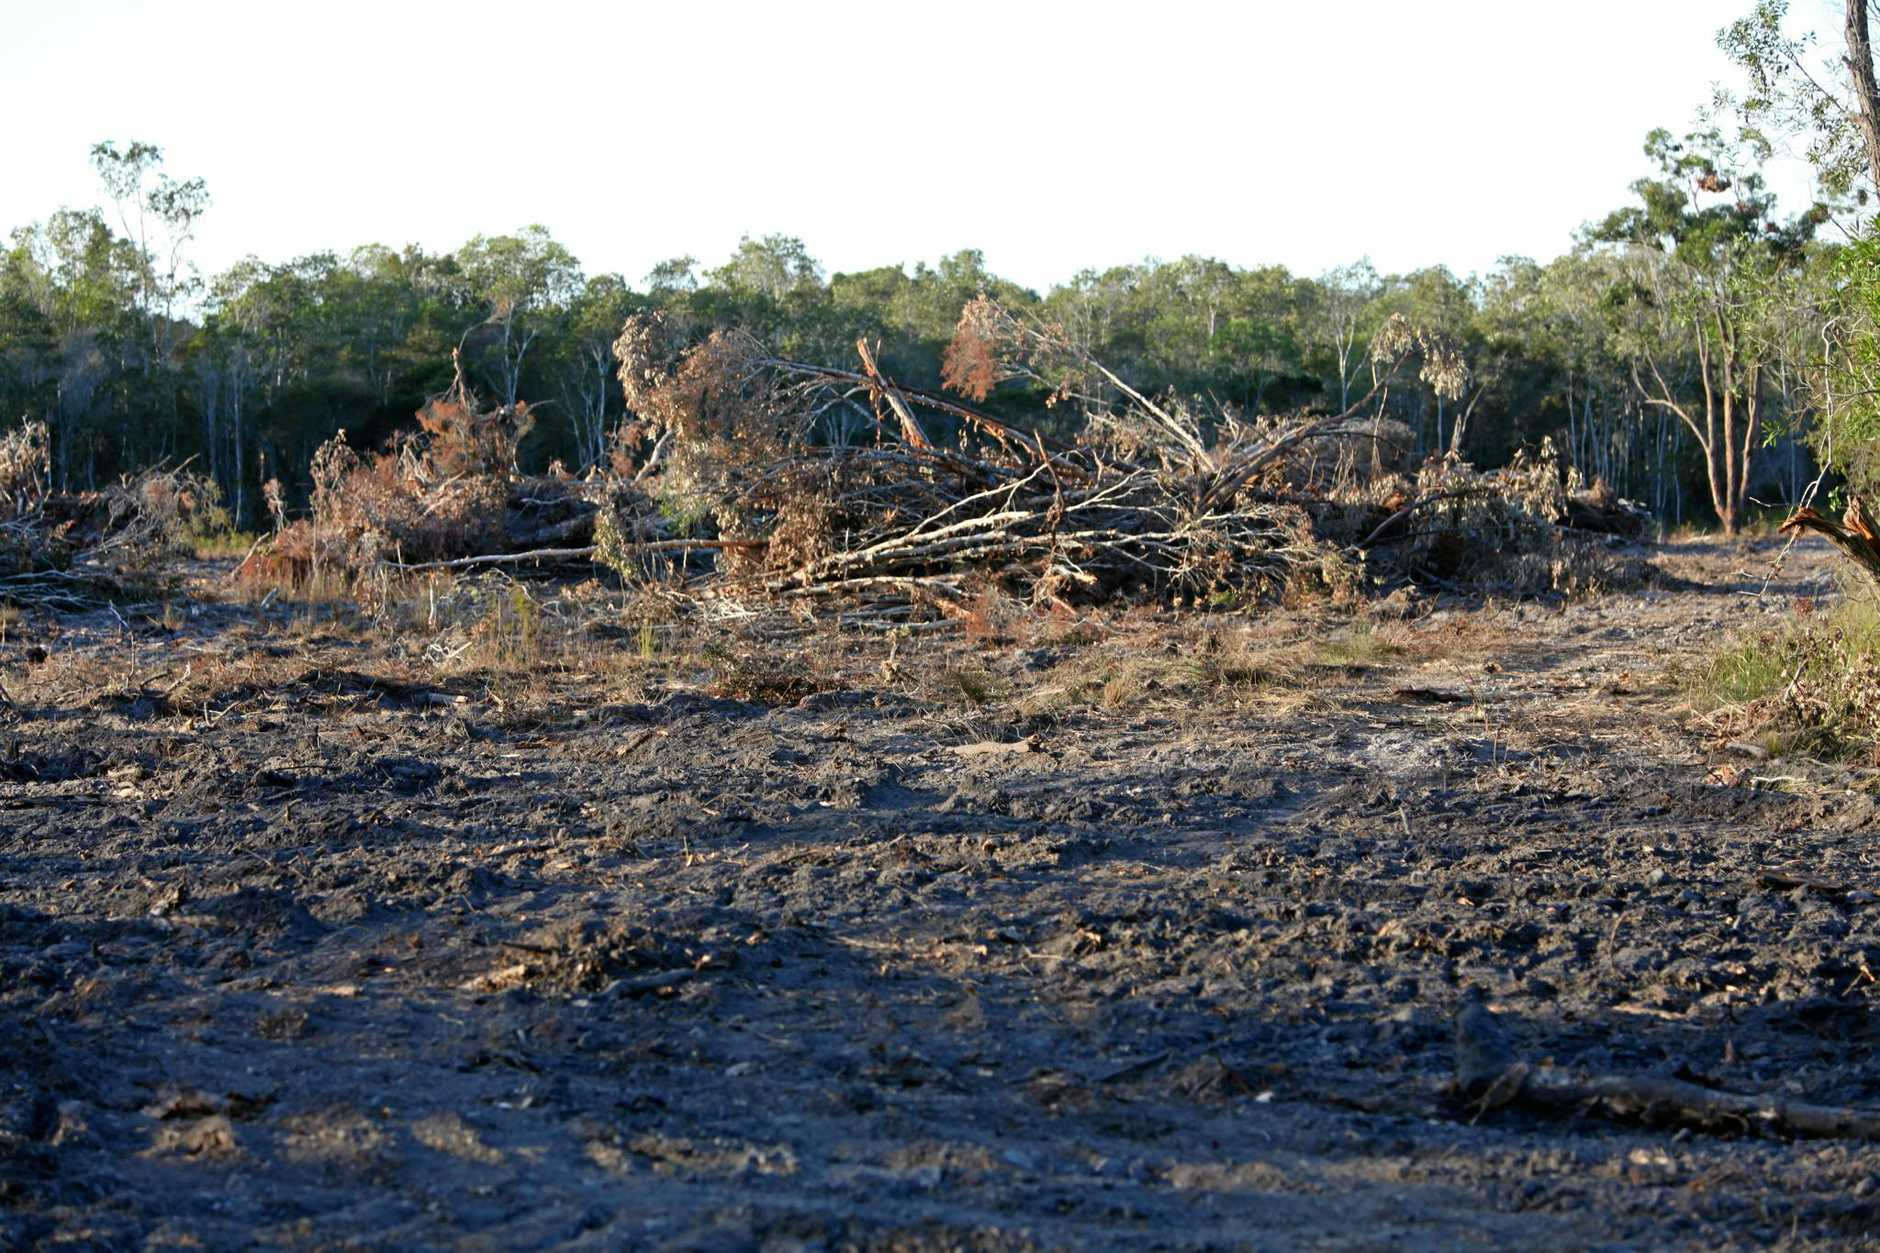 CLEAR FELLED: Reports of land clearing rising in Queensland over recent years has got landholders and conservationists butting heads with policy makers over the growing tensions surrounding the issue.